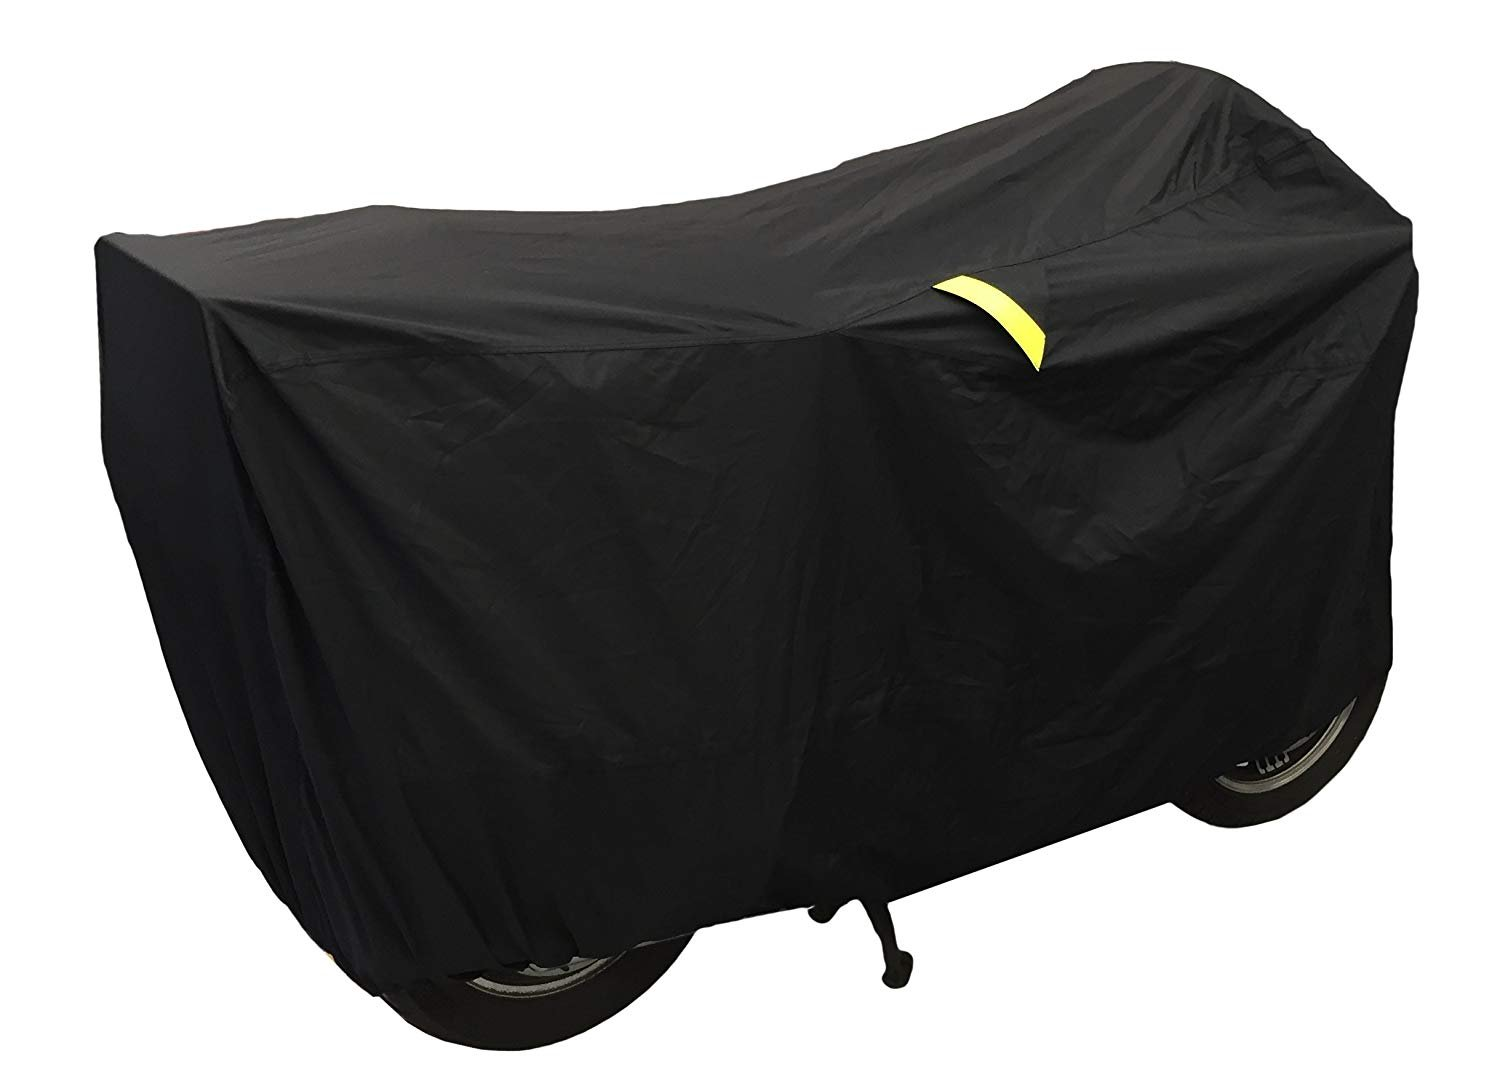 H Sized for Fill-Sized Cruisers /& Touring Bikes over 800 CC All Weather Waterproof Heavy Duty Motorcycle//Motorbike Cover: 250 cm Badass Motogear x 145 cm Large L